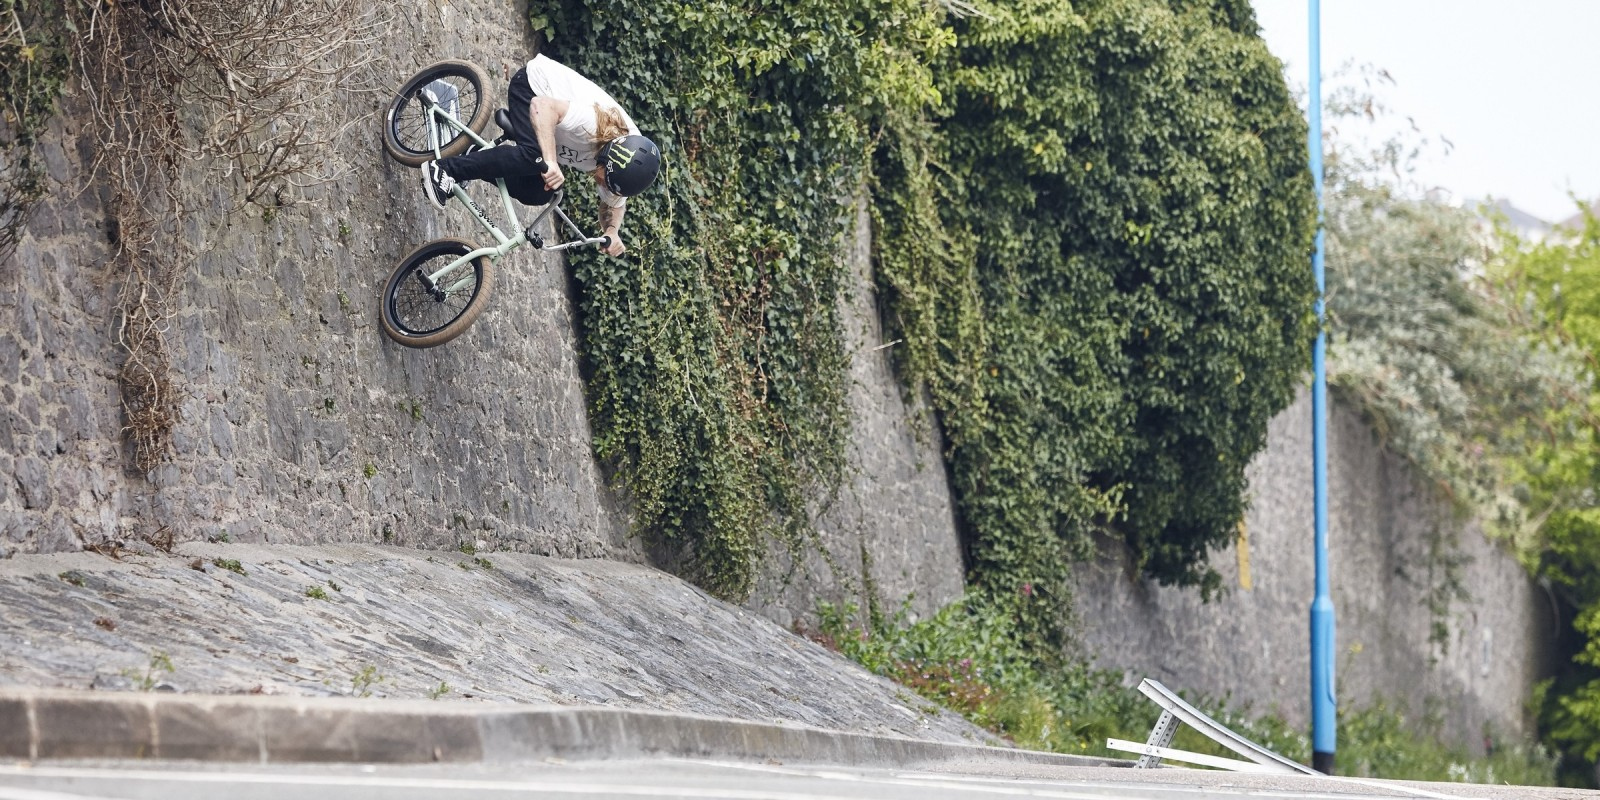 Greg Illingworth during the filming of Ramp II Ride BMX Part 5